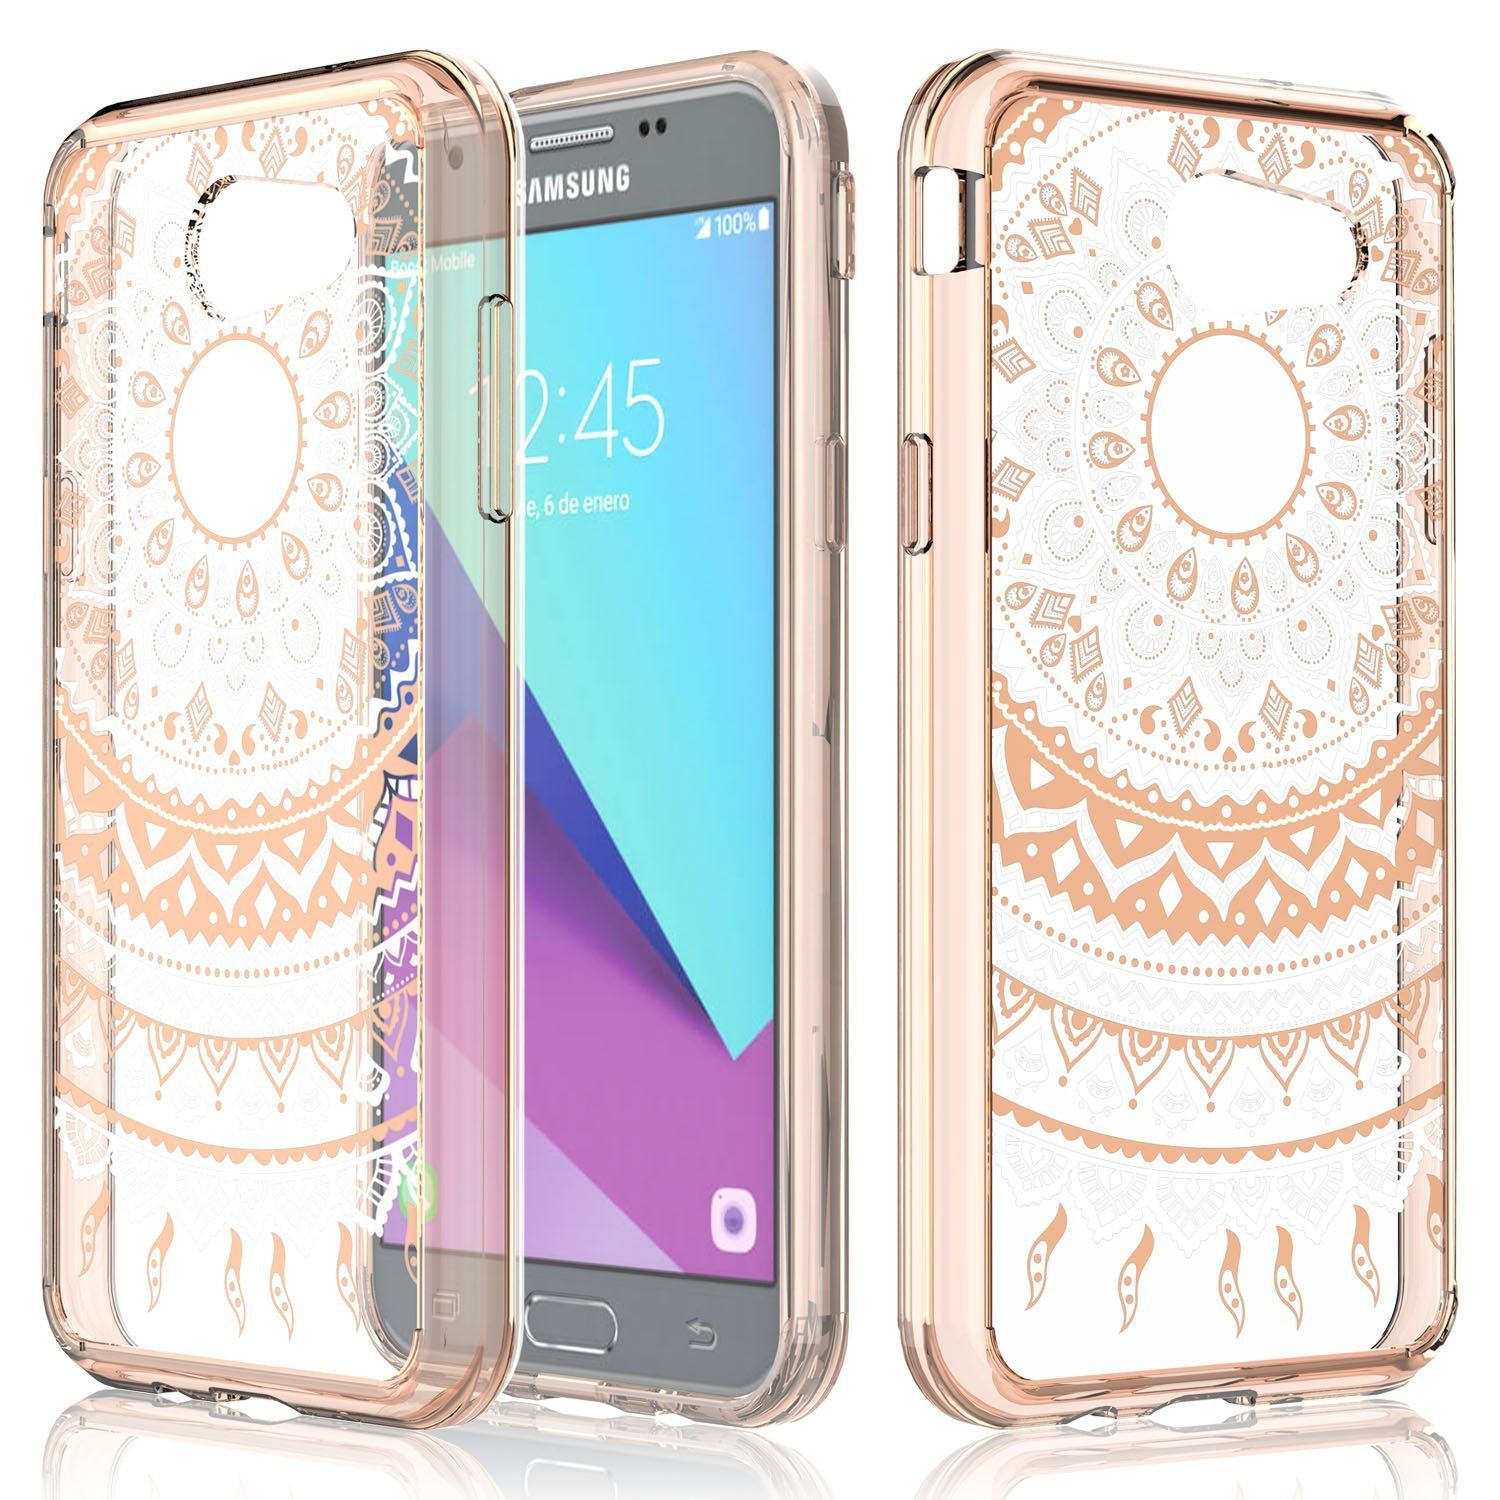 reputable site 3ba11 e043c Amazon.com: Case for Samsung Galaxy J3 Emerge / J3 2017 / J3 Prime ...